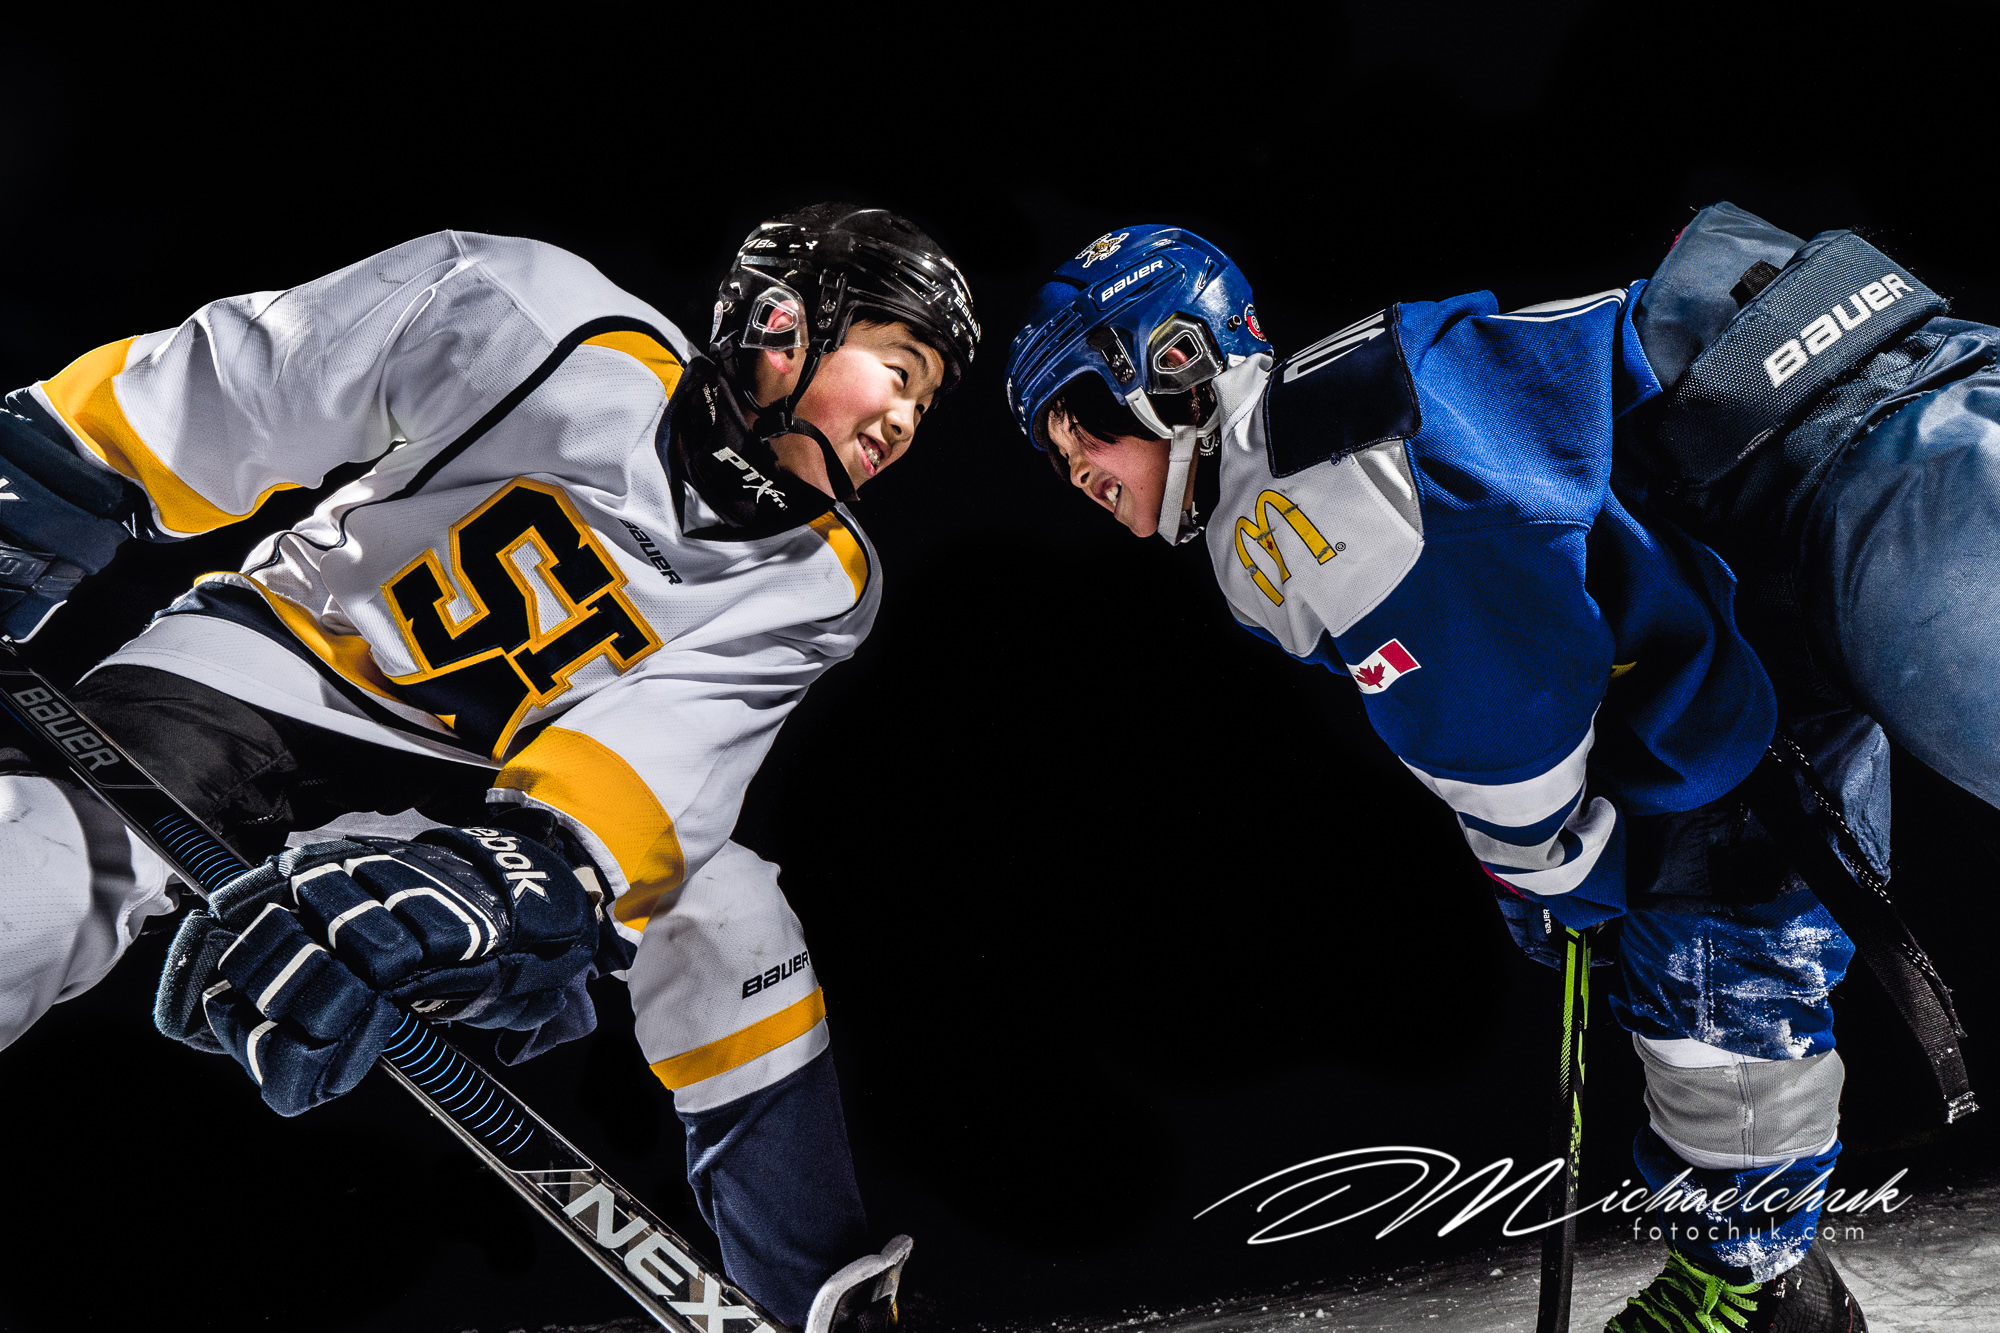 Brothers fighting for the puck on the outdoor ice at night.